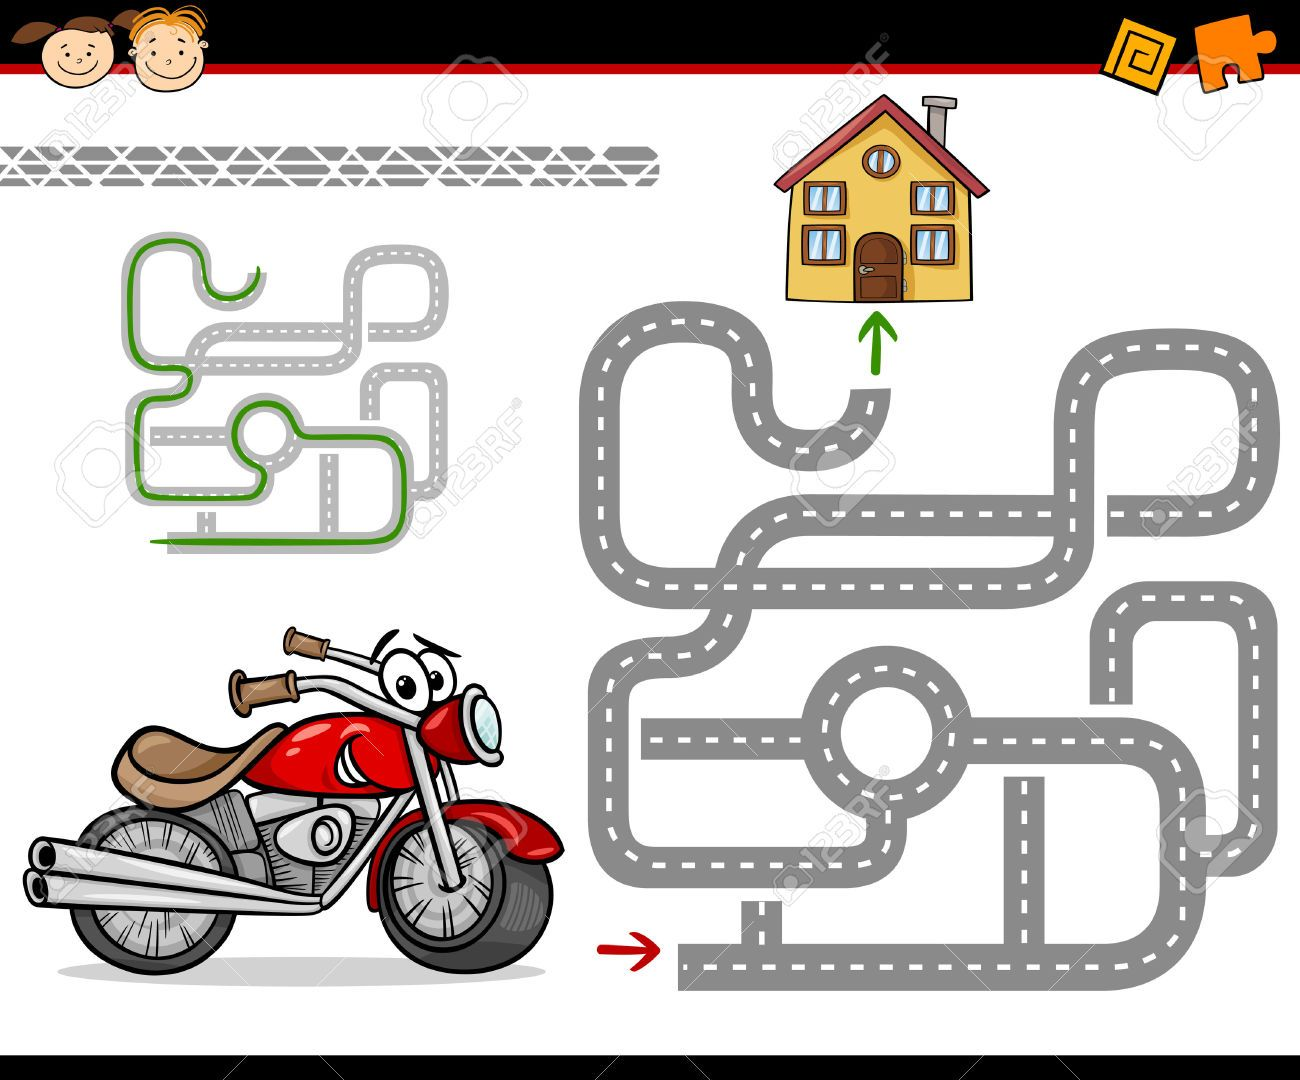 Cartoon Illustration of Education Maze or Labyrinth Game for | maze ...